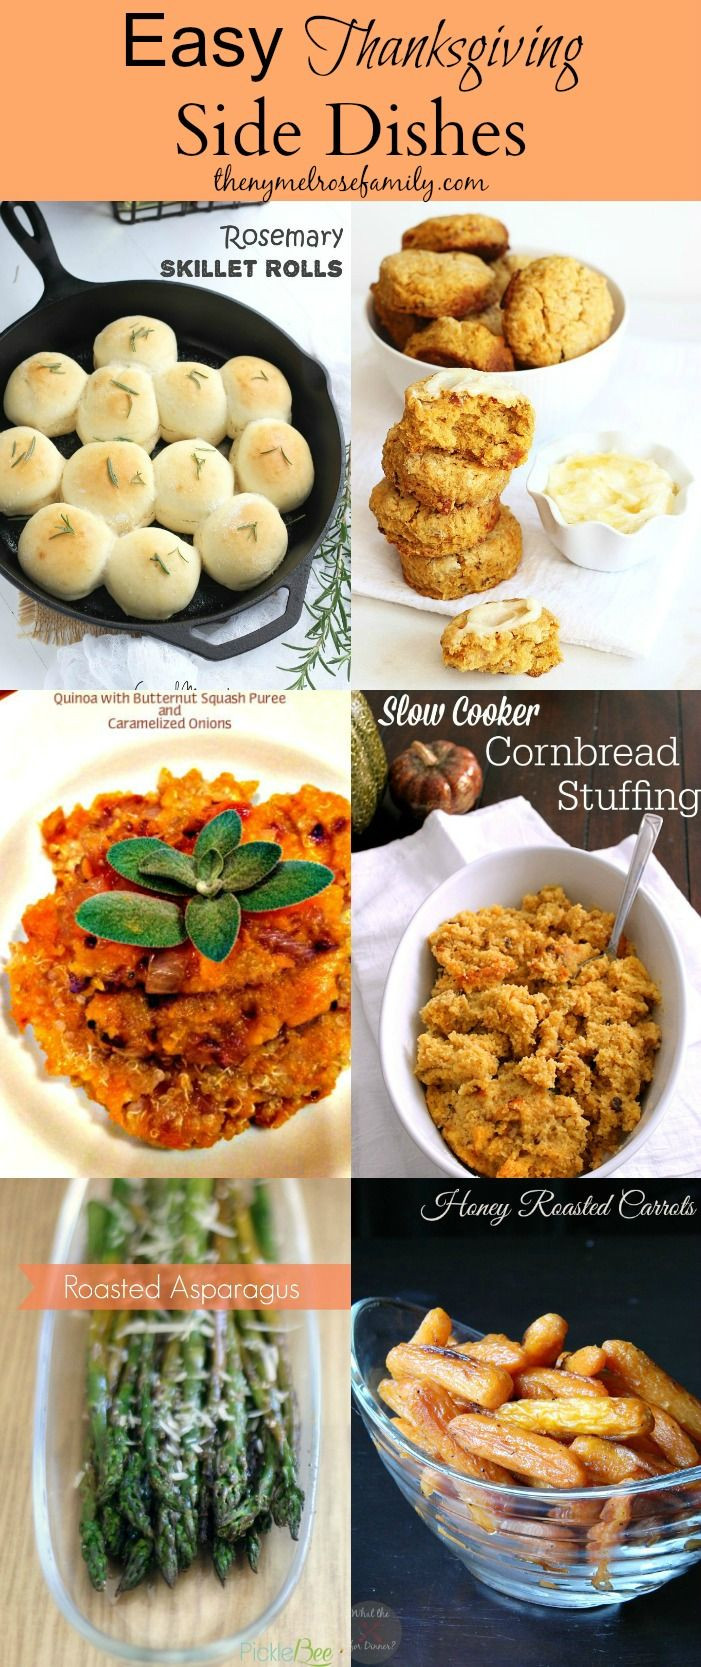 Easy Side Dishes For Thanksgiving Meal  199 best images about Easy Thanksgiving Recipes & Crafts